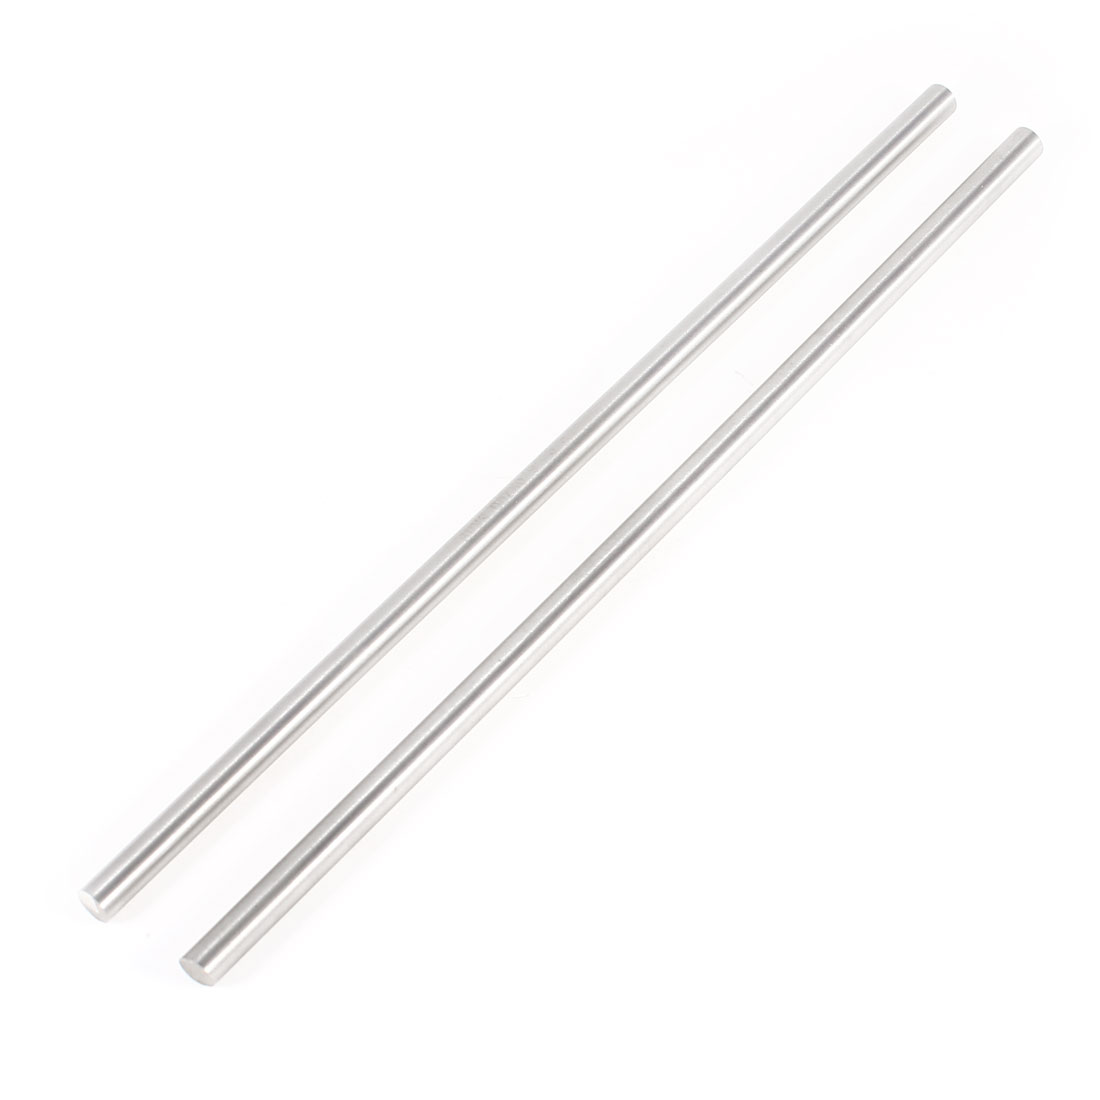 6mm x 200mm Steel Round Turning Bars Gray 2 Pieces for CNC Lathe by Unique-Bargains